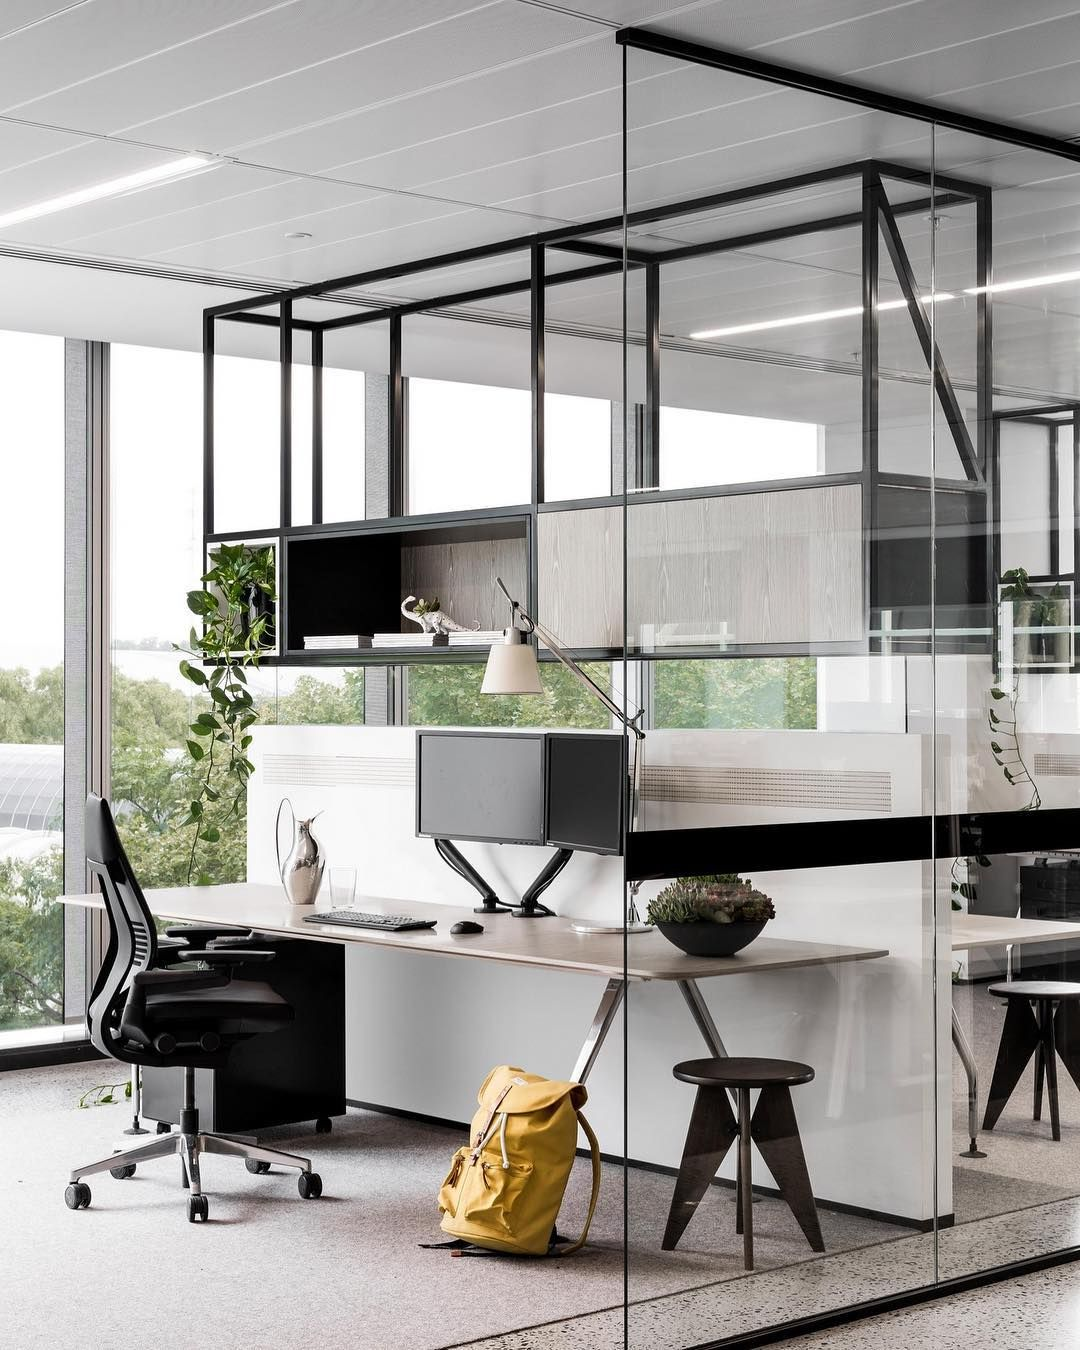 Multiplex offices in Perth | design by Woods Bagot Image Credit - Dion Robeson